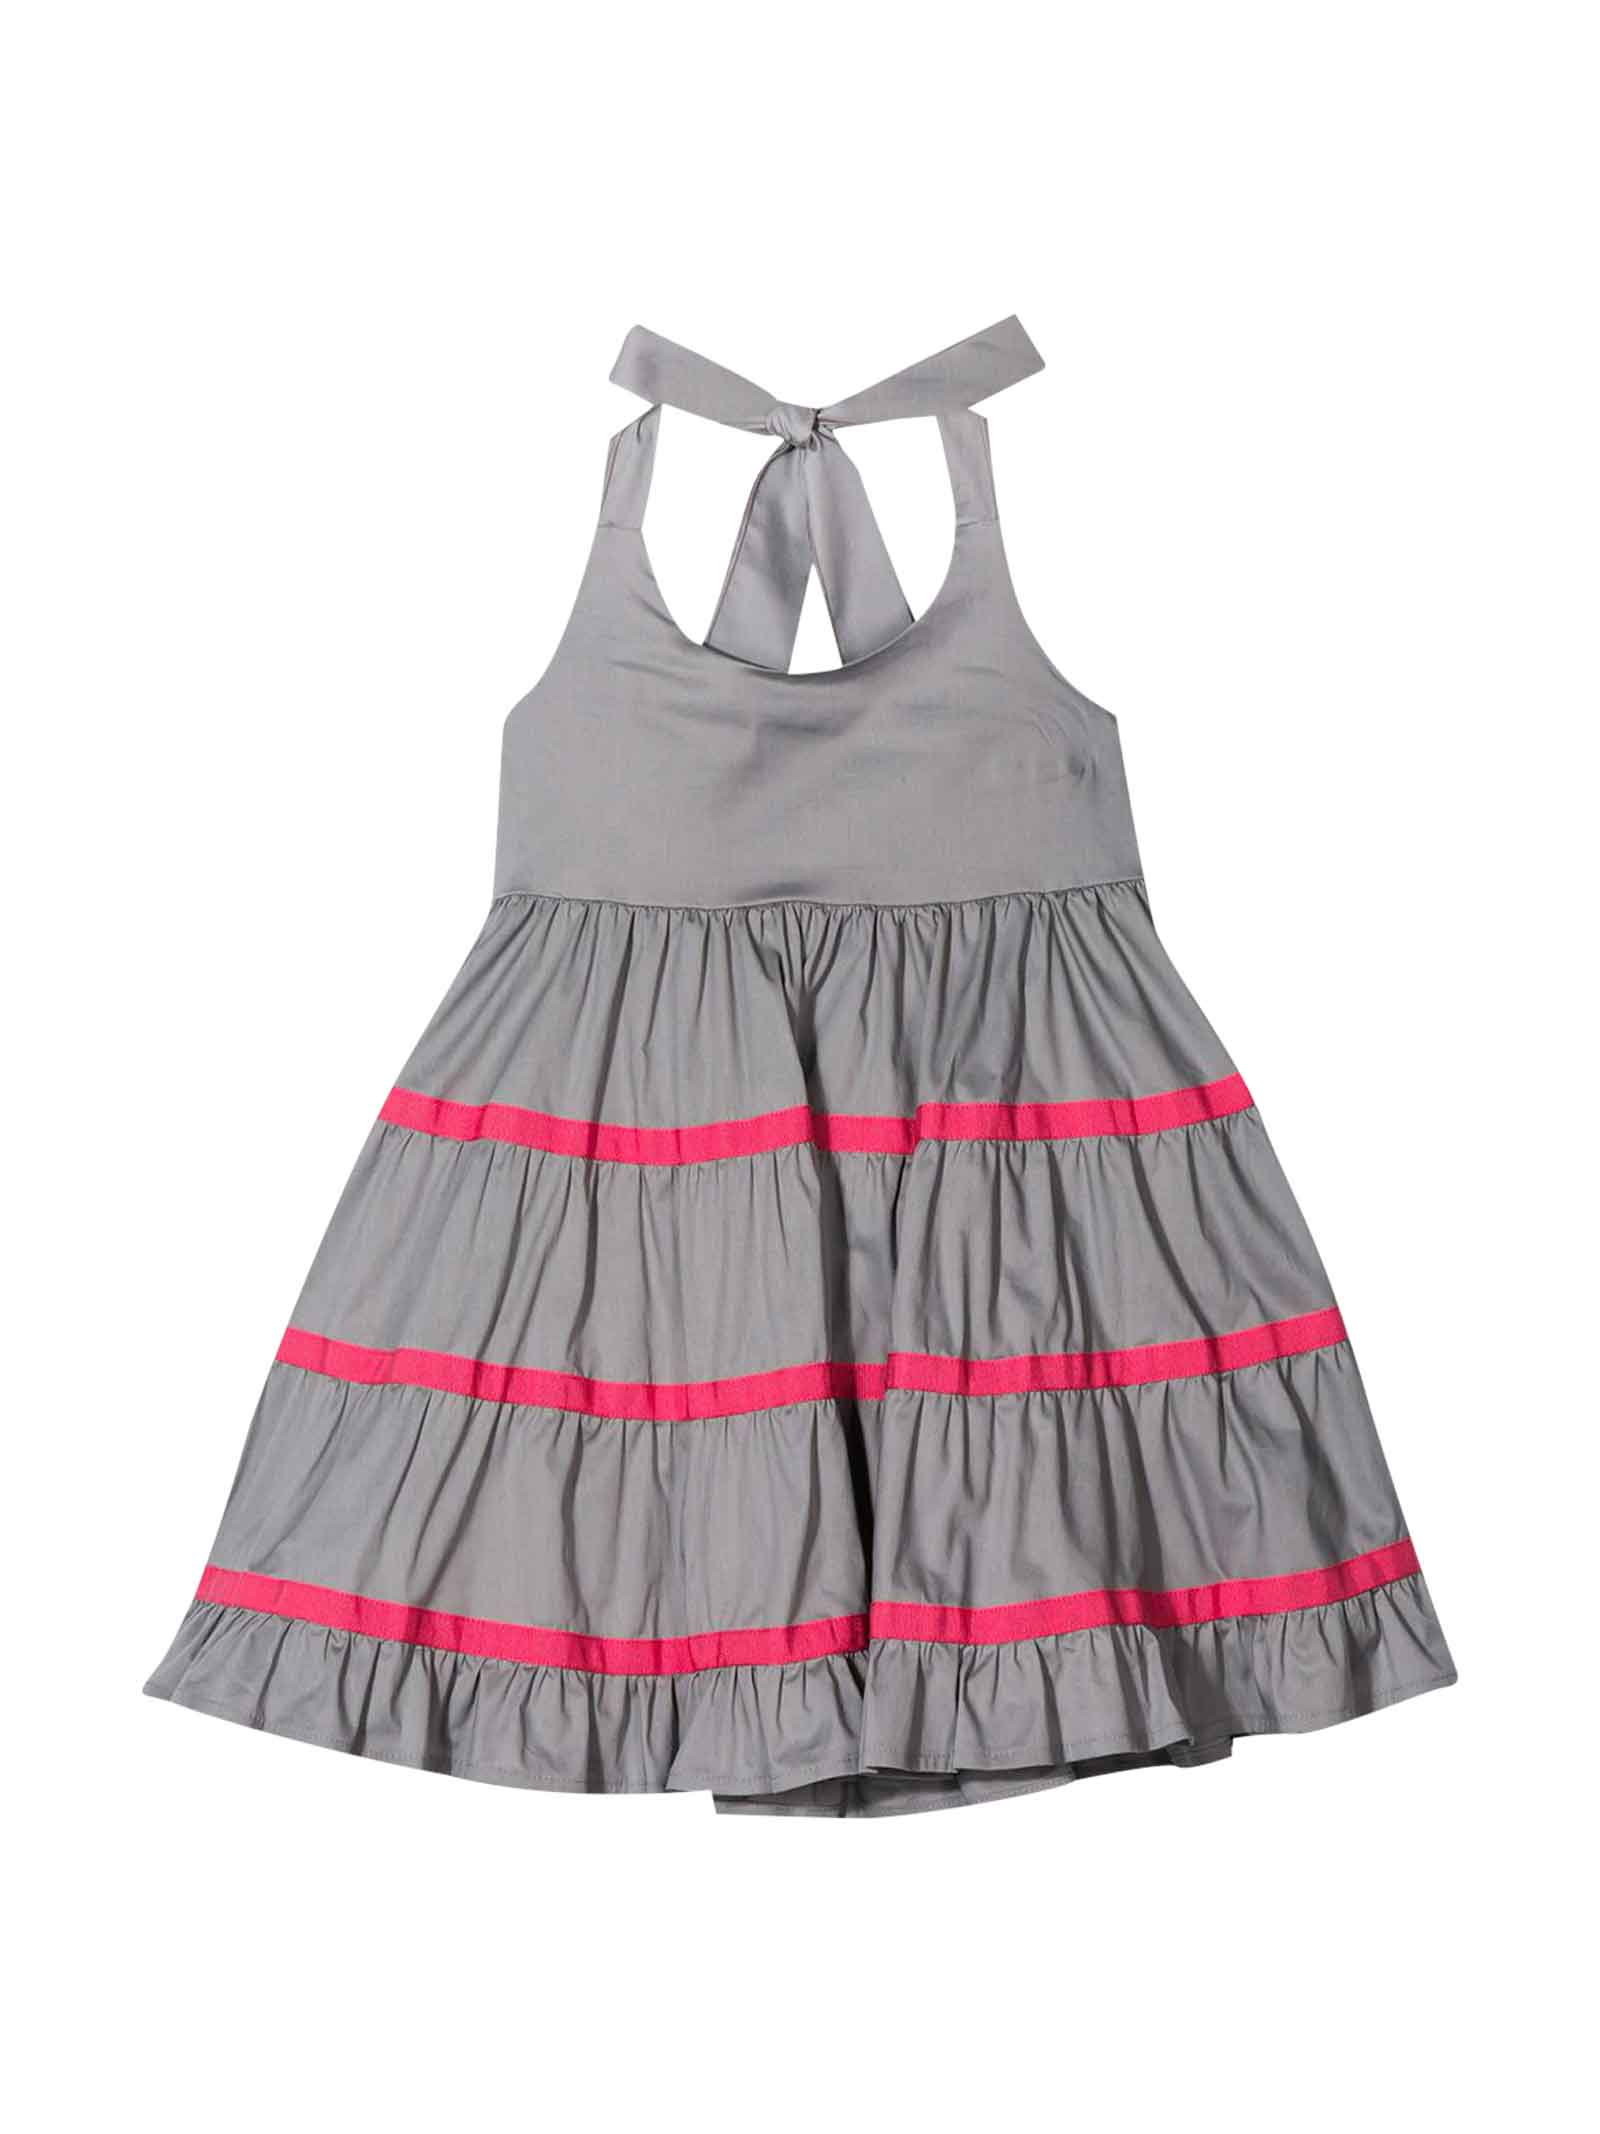 Buy Piccola Ludo Gray Dress online, shop Piccola Ludo with free shipping